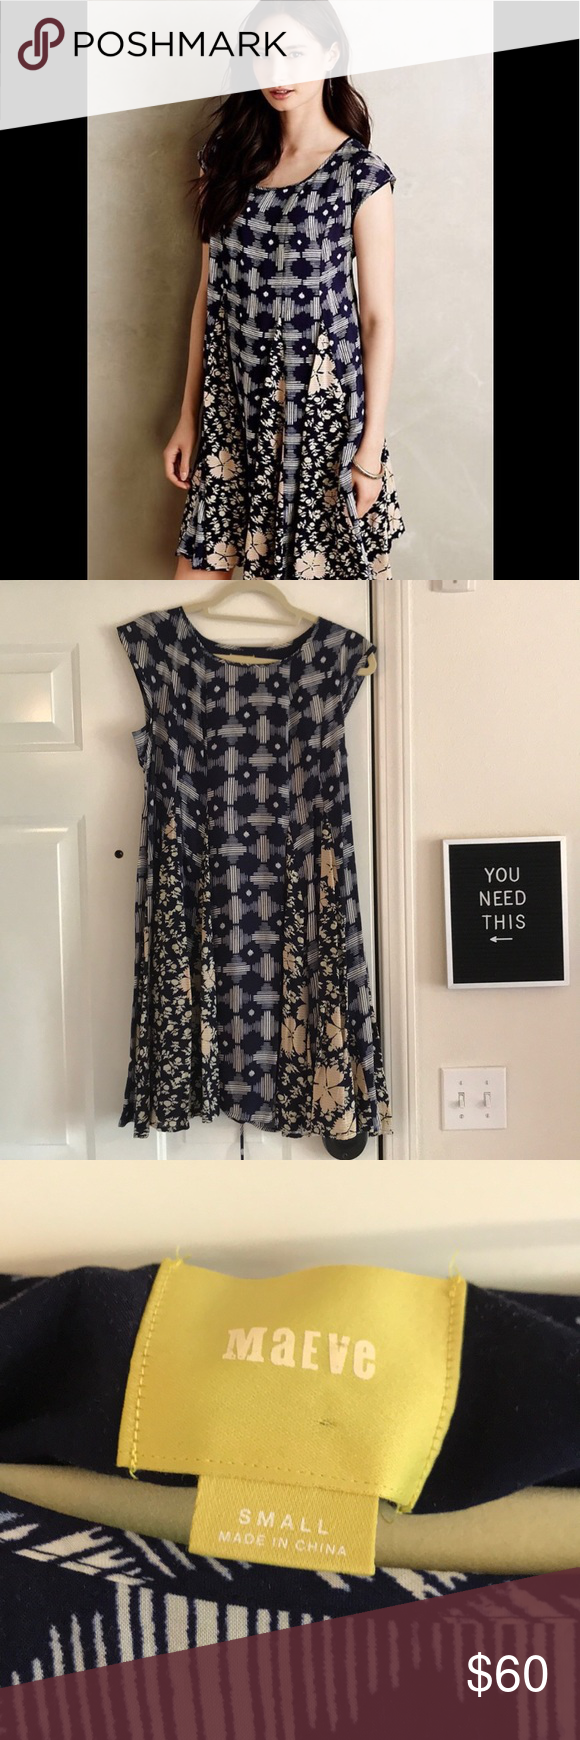 b544e8952d81 Maeve Indiga Swing Dress Anthropologie Maeve Swing Dress! Adorable Swing  Dress perfect to transition from summer to fall. Lace up detail and tassels  on the ...